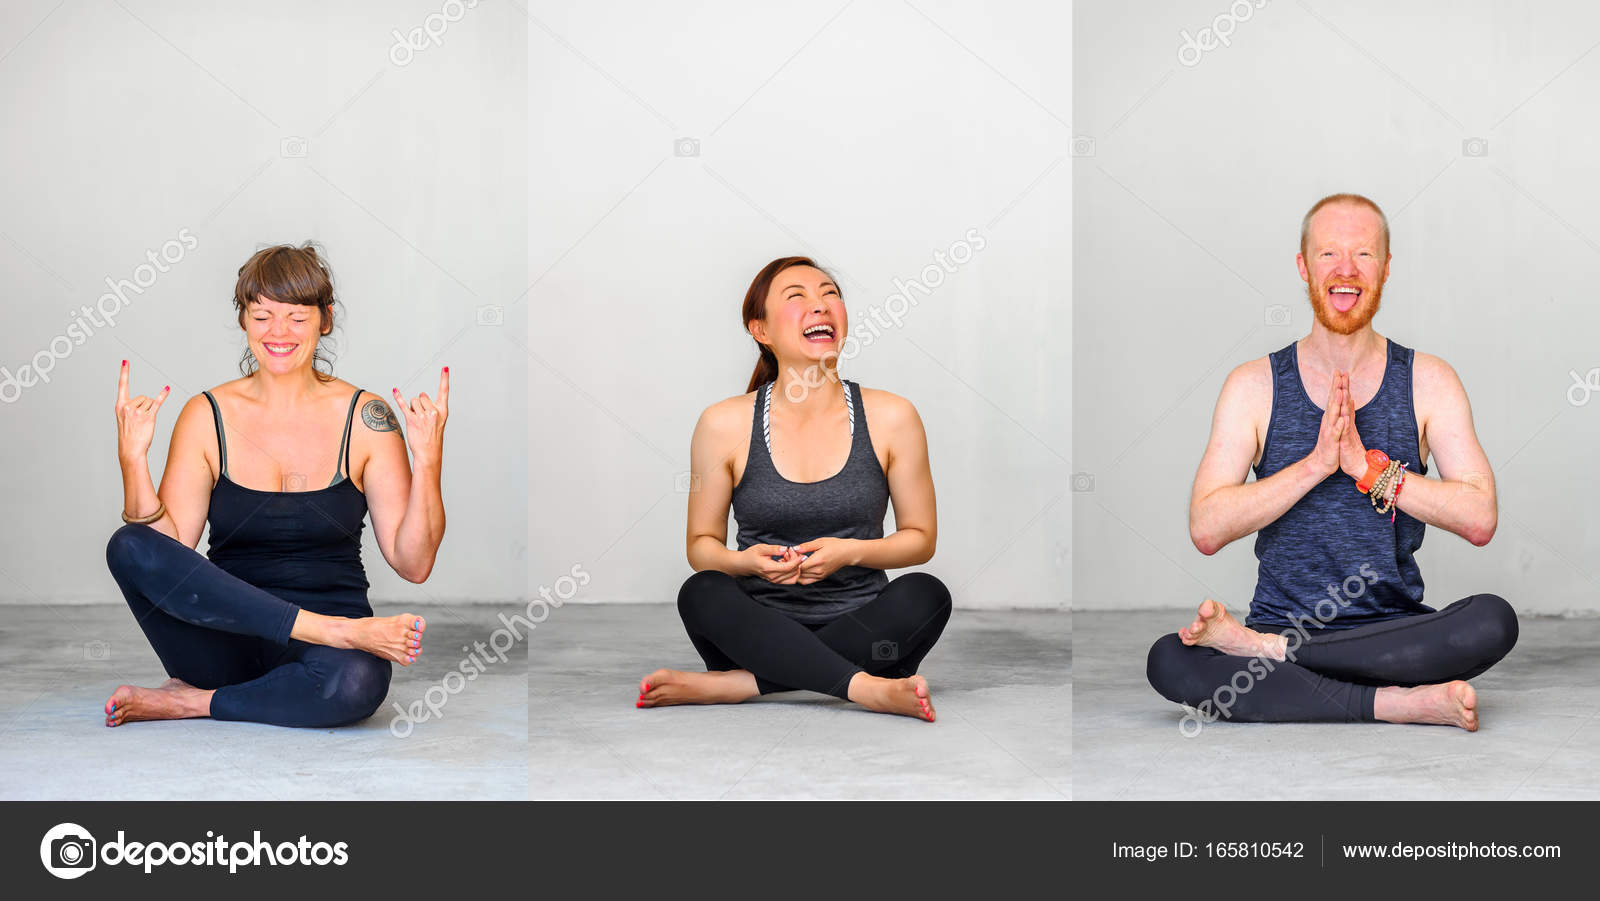 yoga students showing different yoga poses three people stock